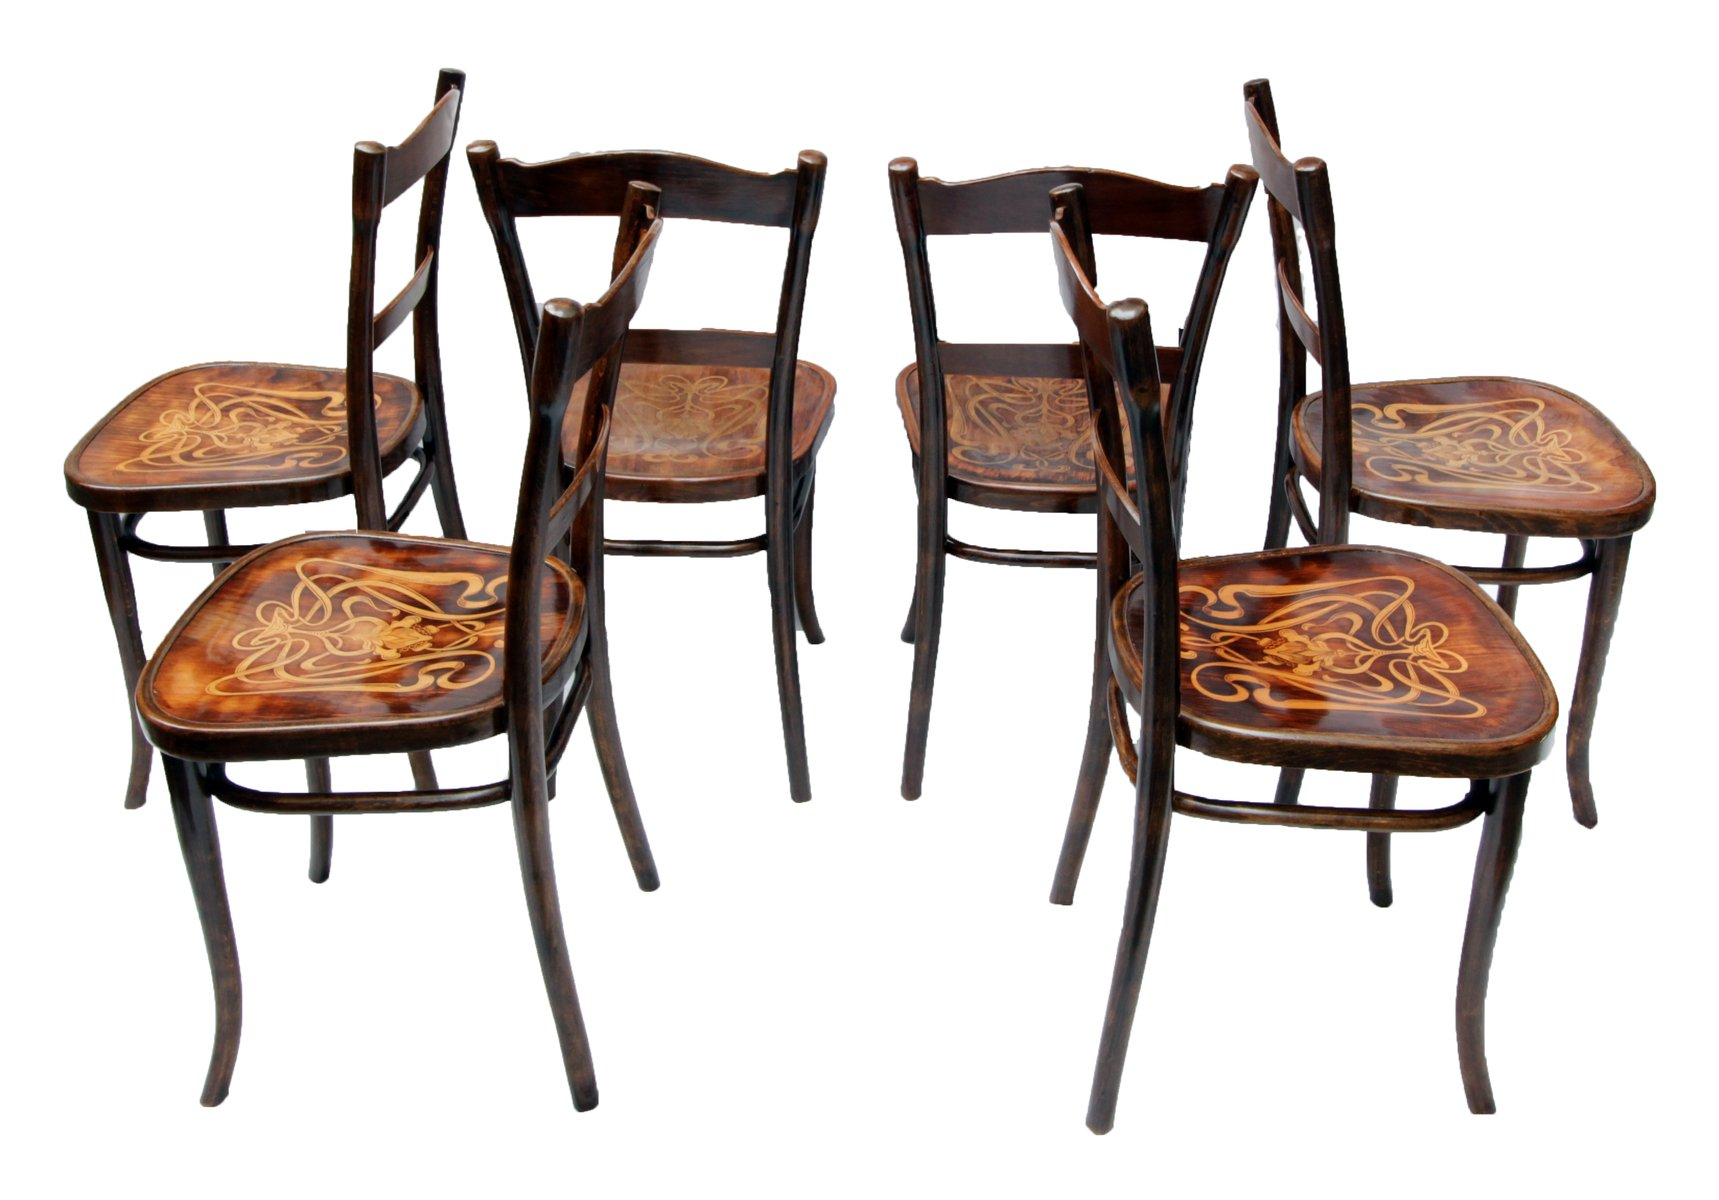 bentwood dining chair purple cuddle antique decorated chairs from thonet set